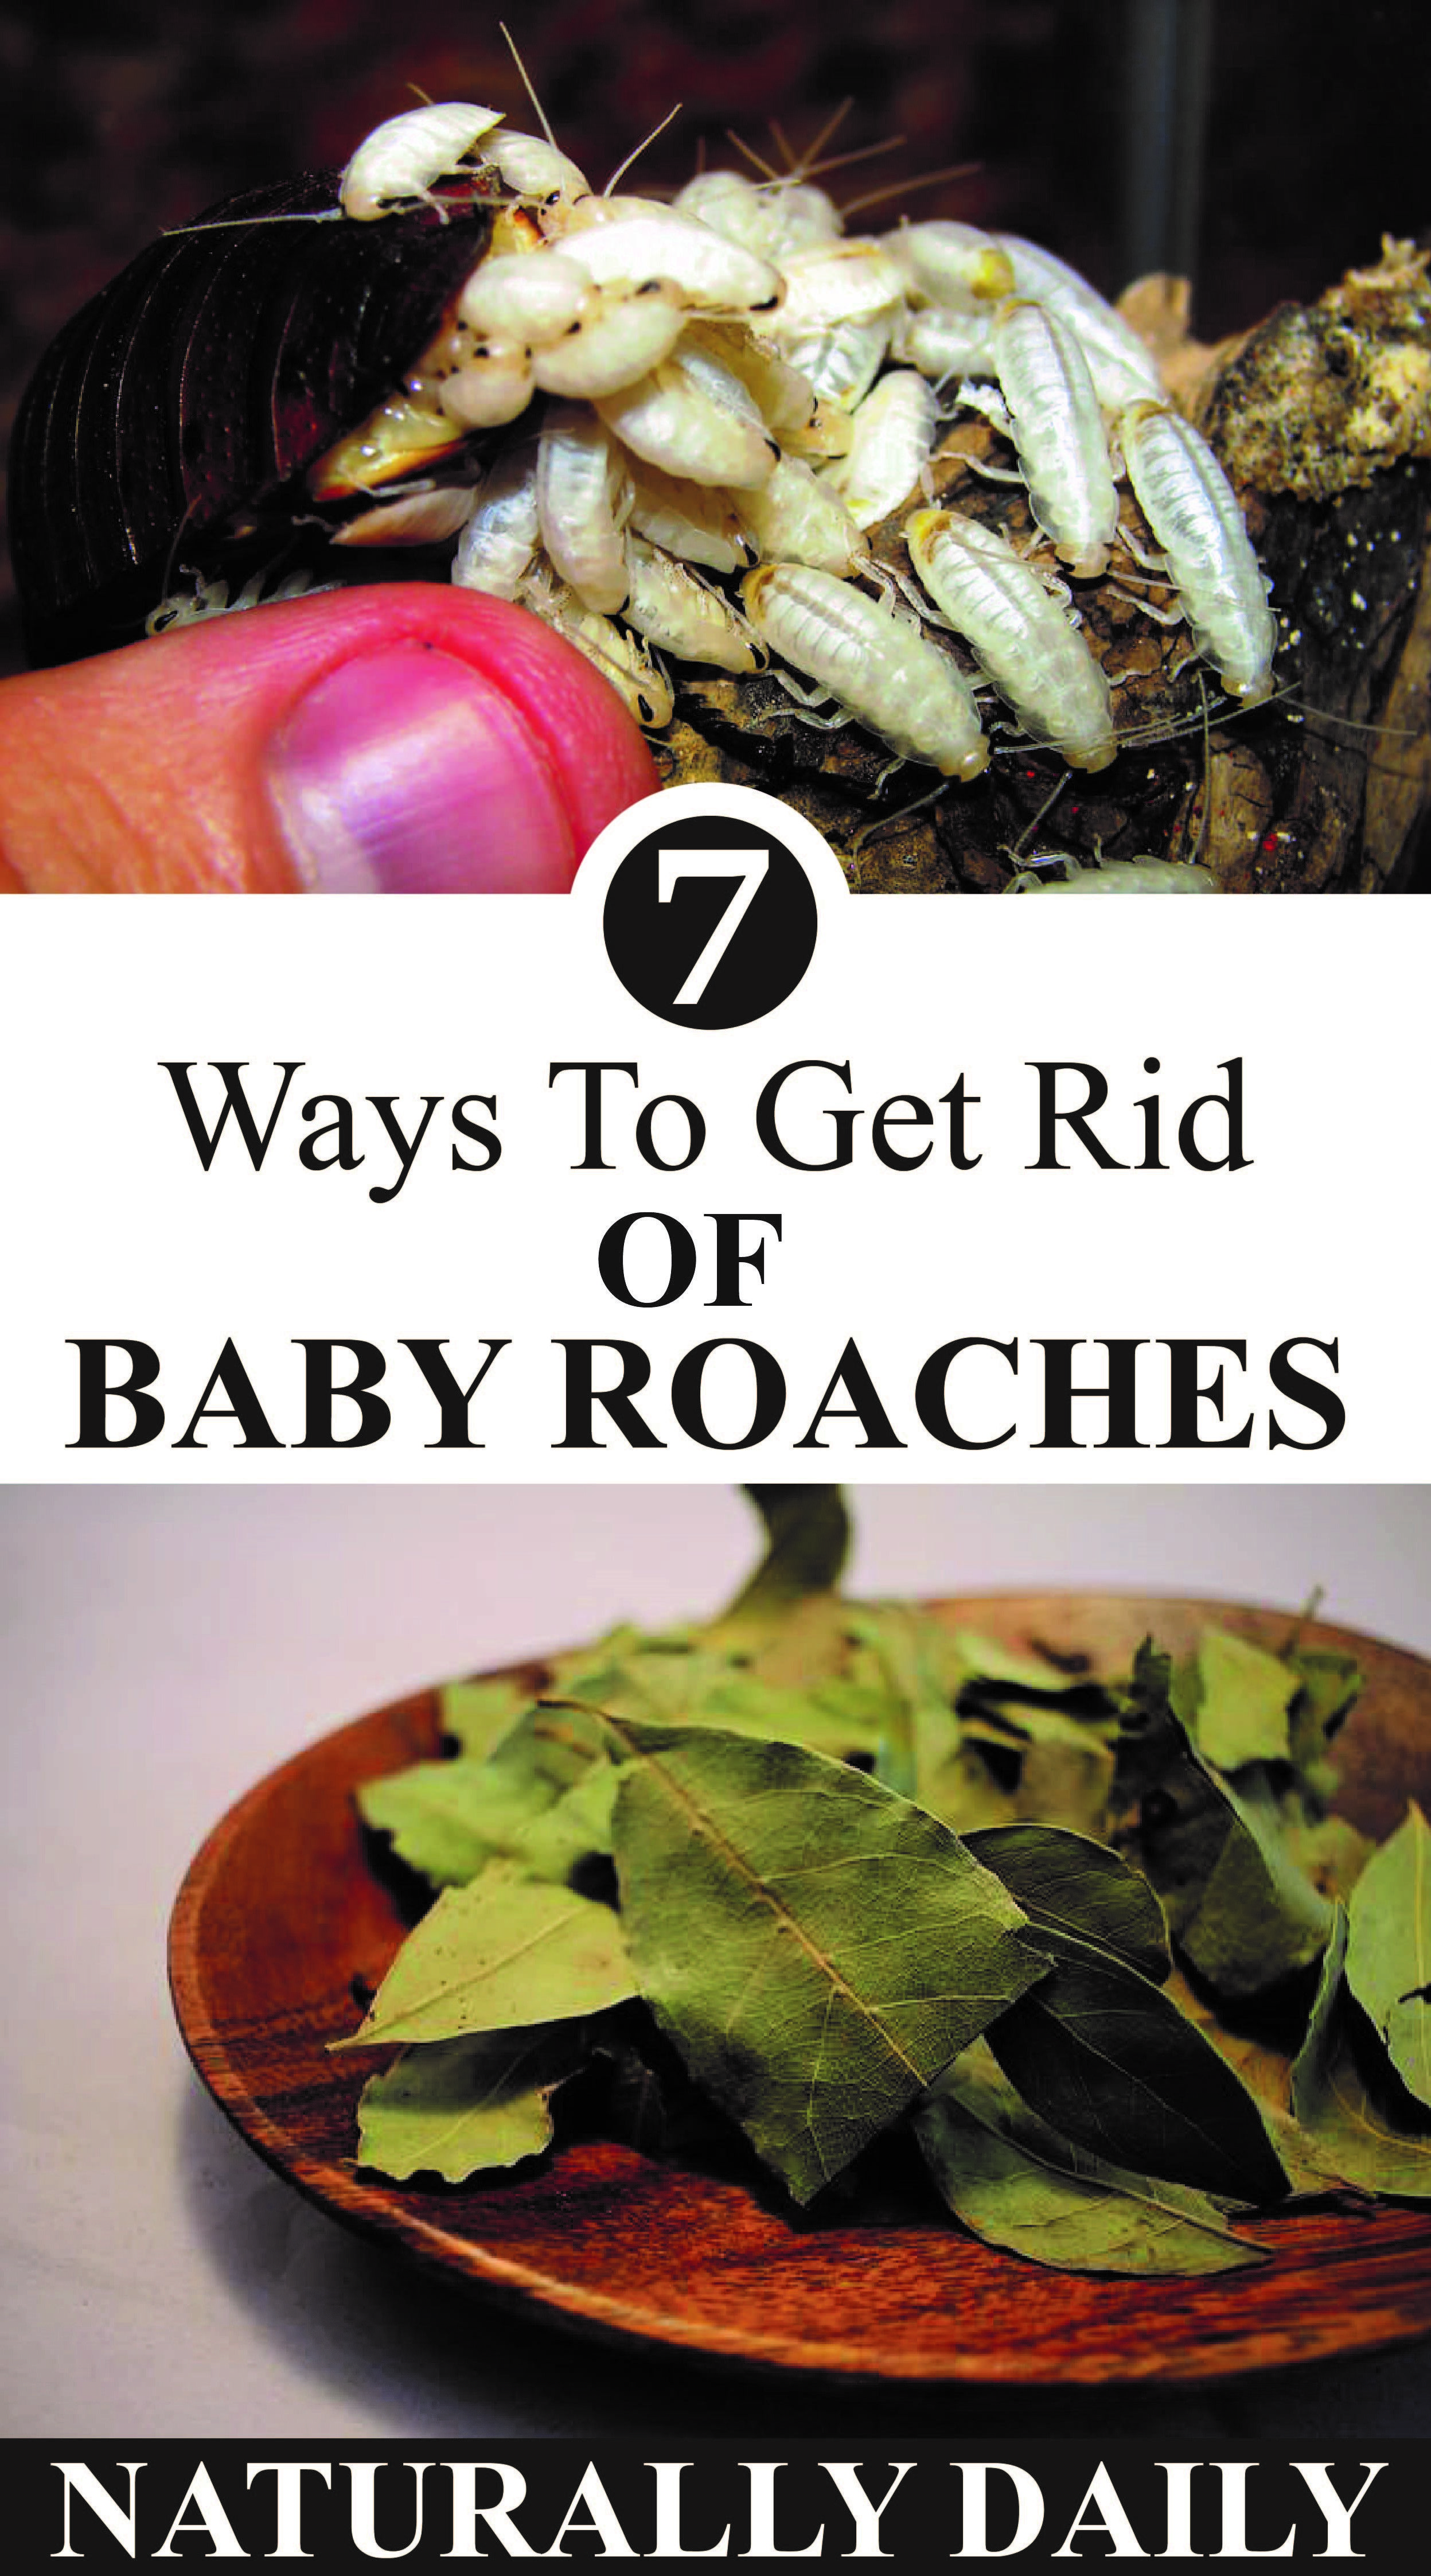 7 ways to get rid of baby roaches in your house naturally